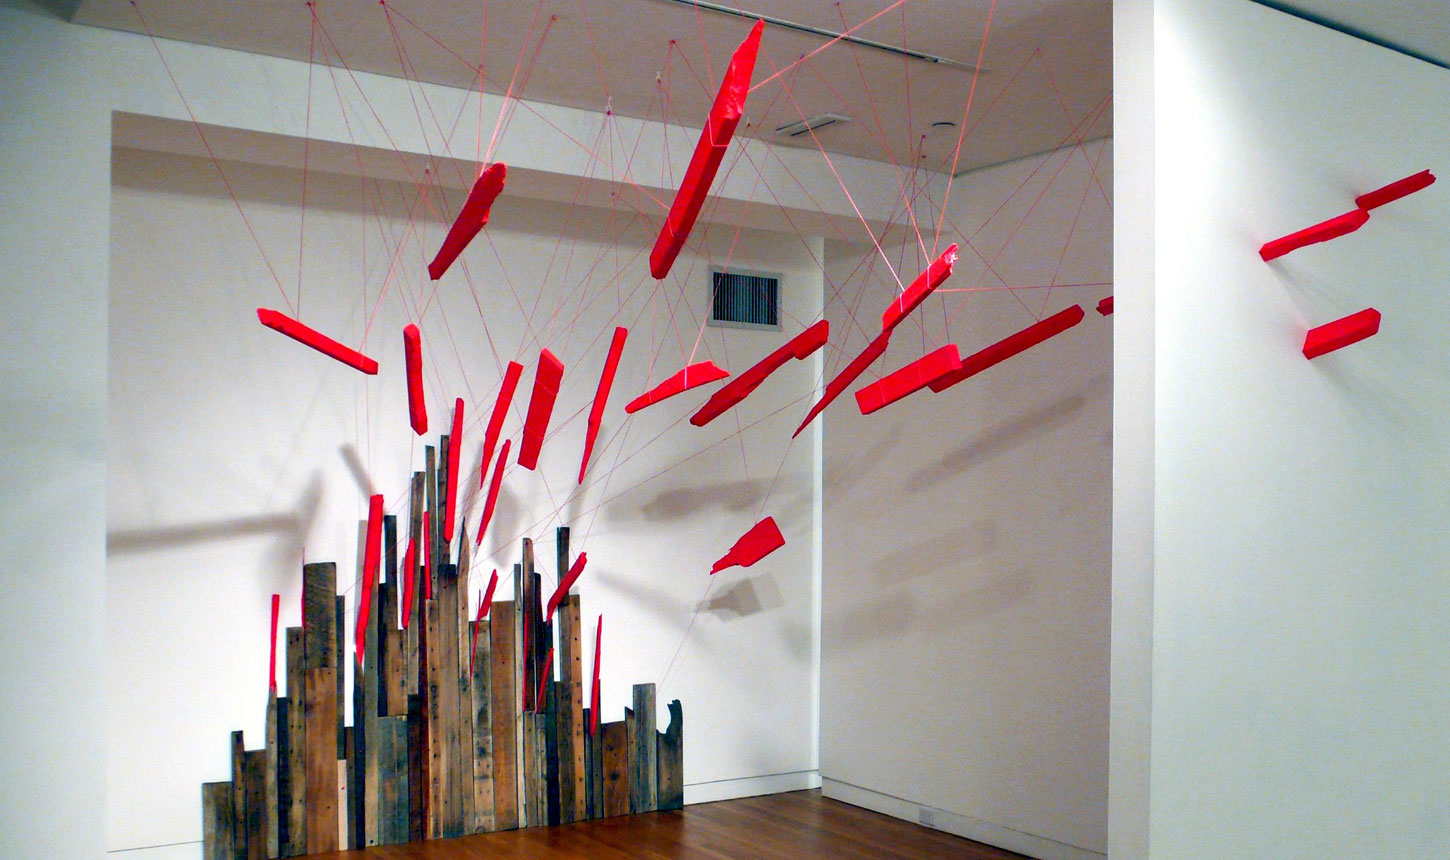 Time-Binding: Installations and Drawings by Sarah Hardesty